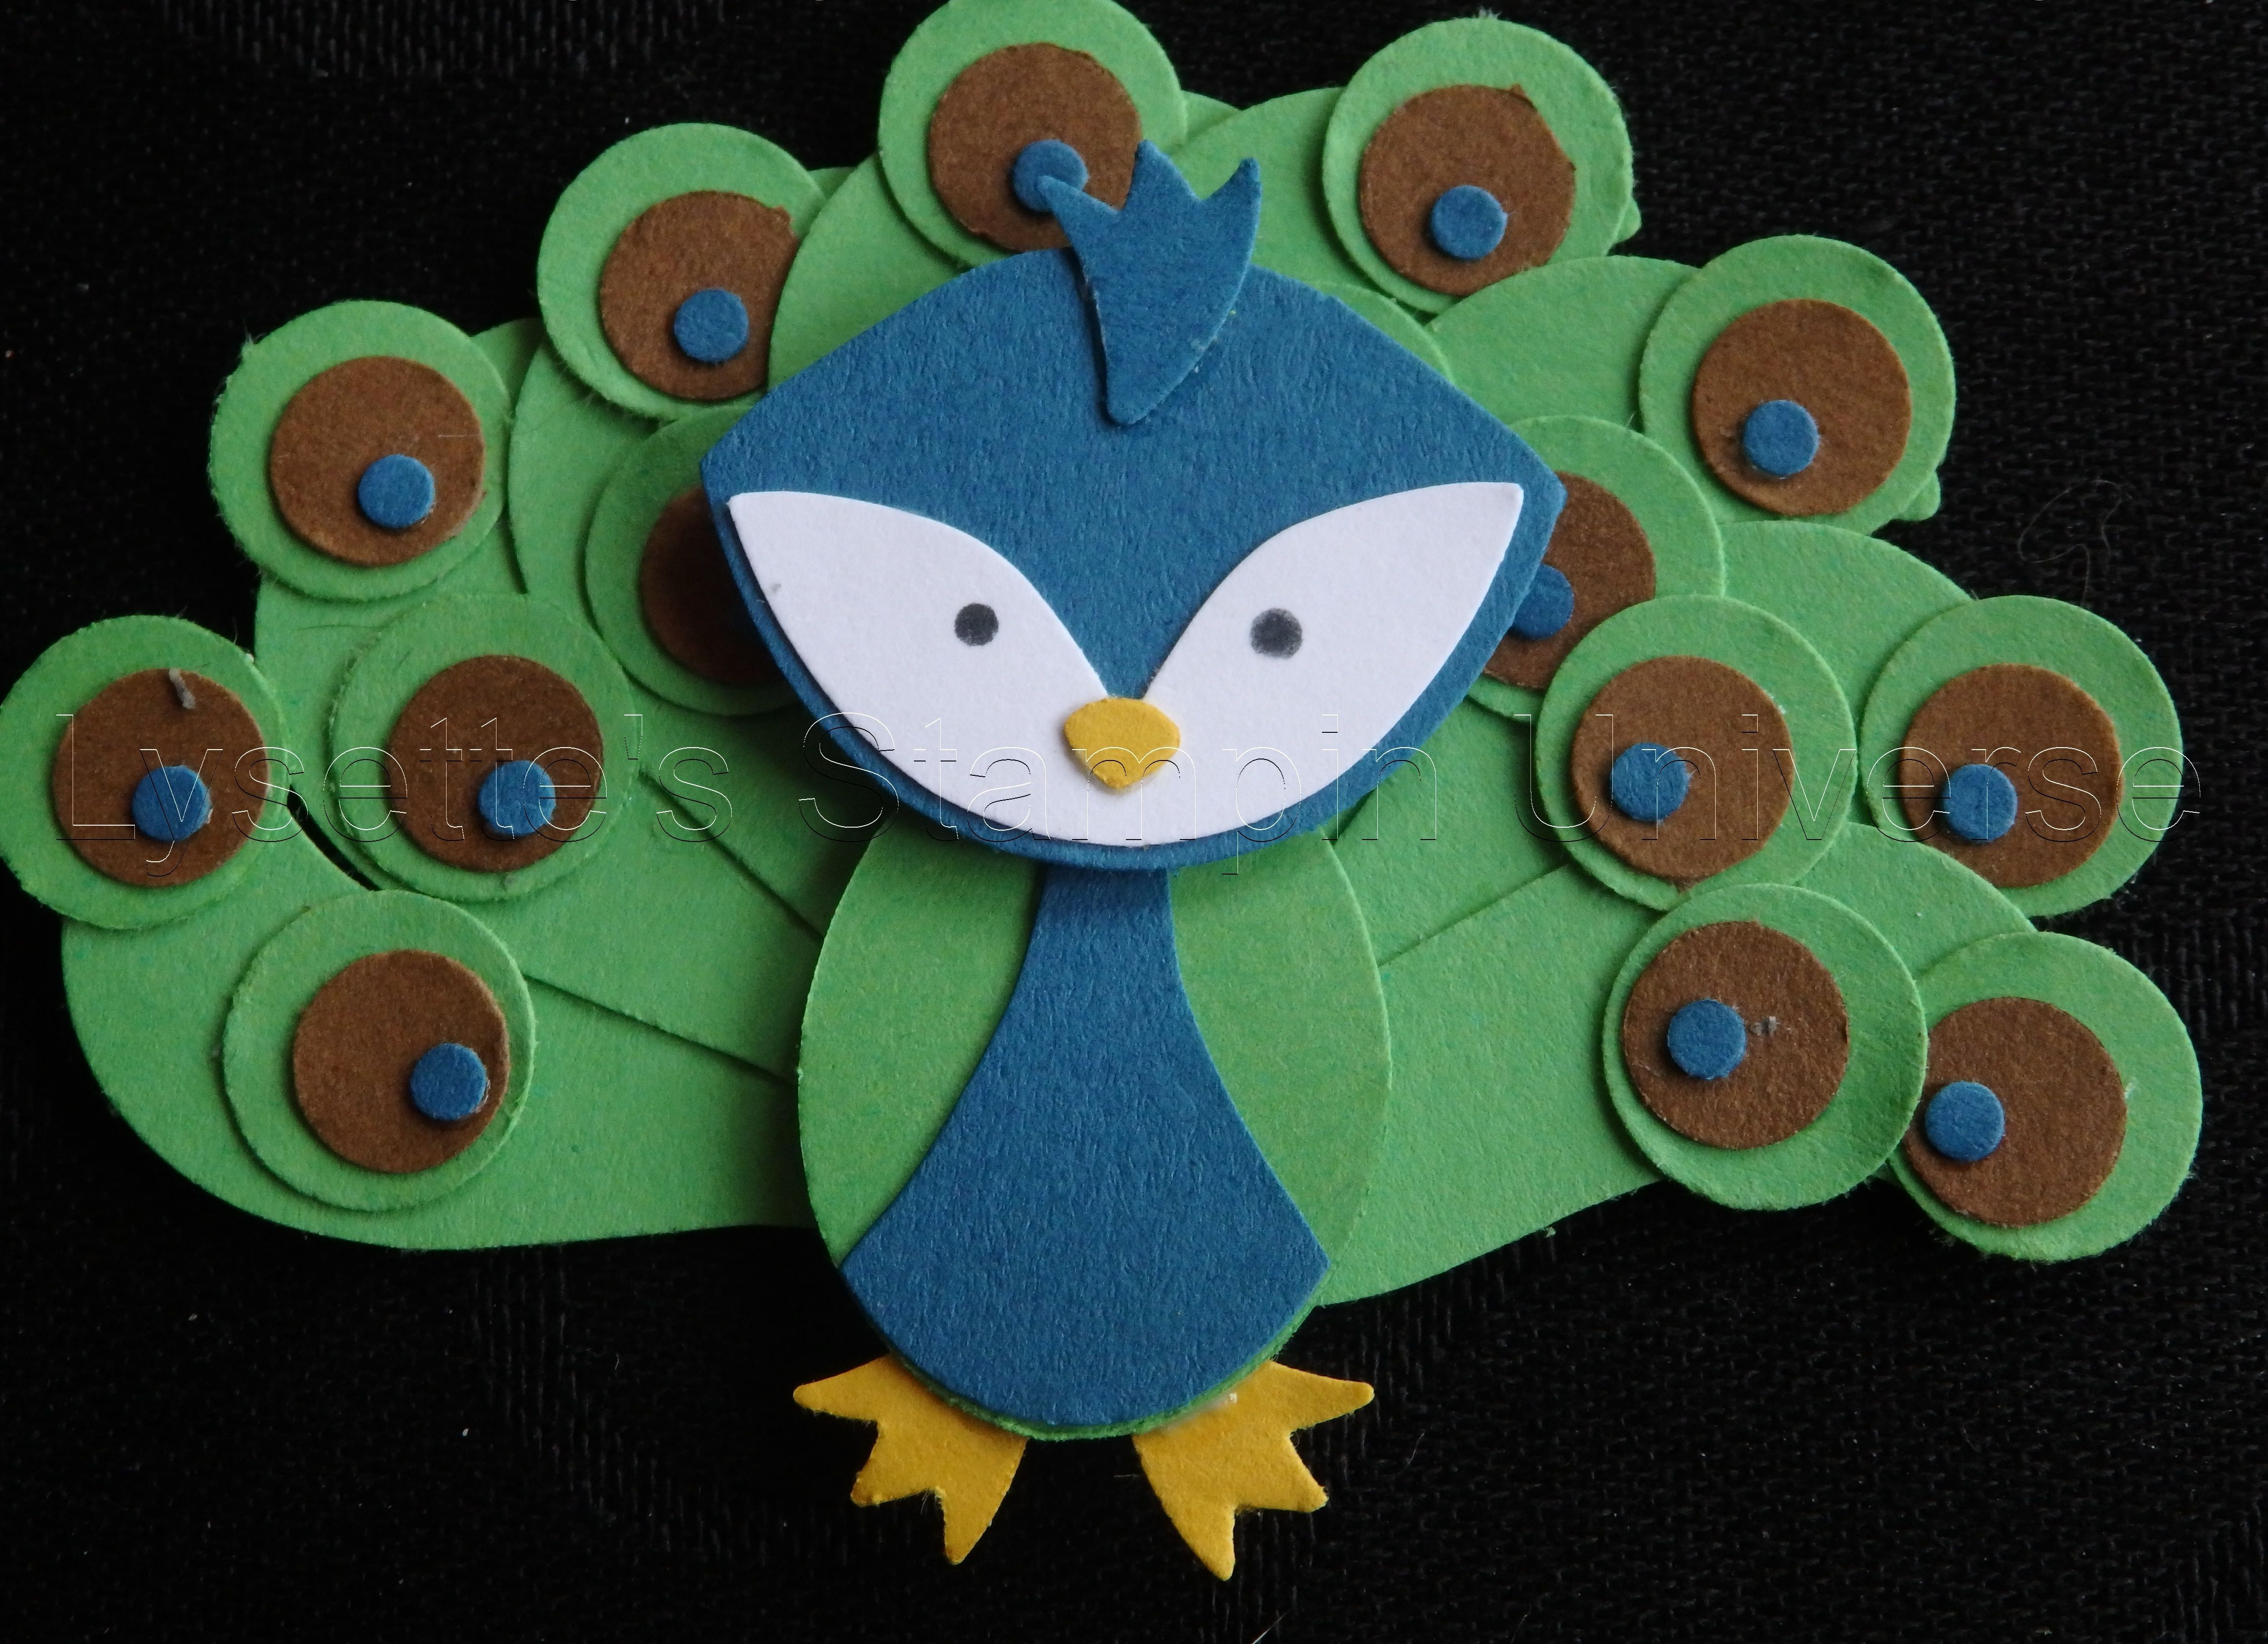 Pin by gayle enouen on stamping ideas punch art pinterest foxy friends punch stampin up foxy friends cards owl punch cards owl card paper punch art craft punches card crafts paper crafts scrap paper storage jeuxipadfo Image collections